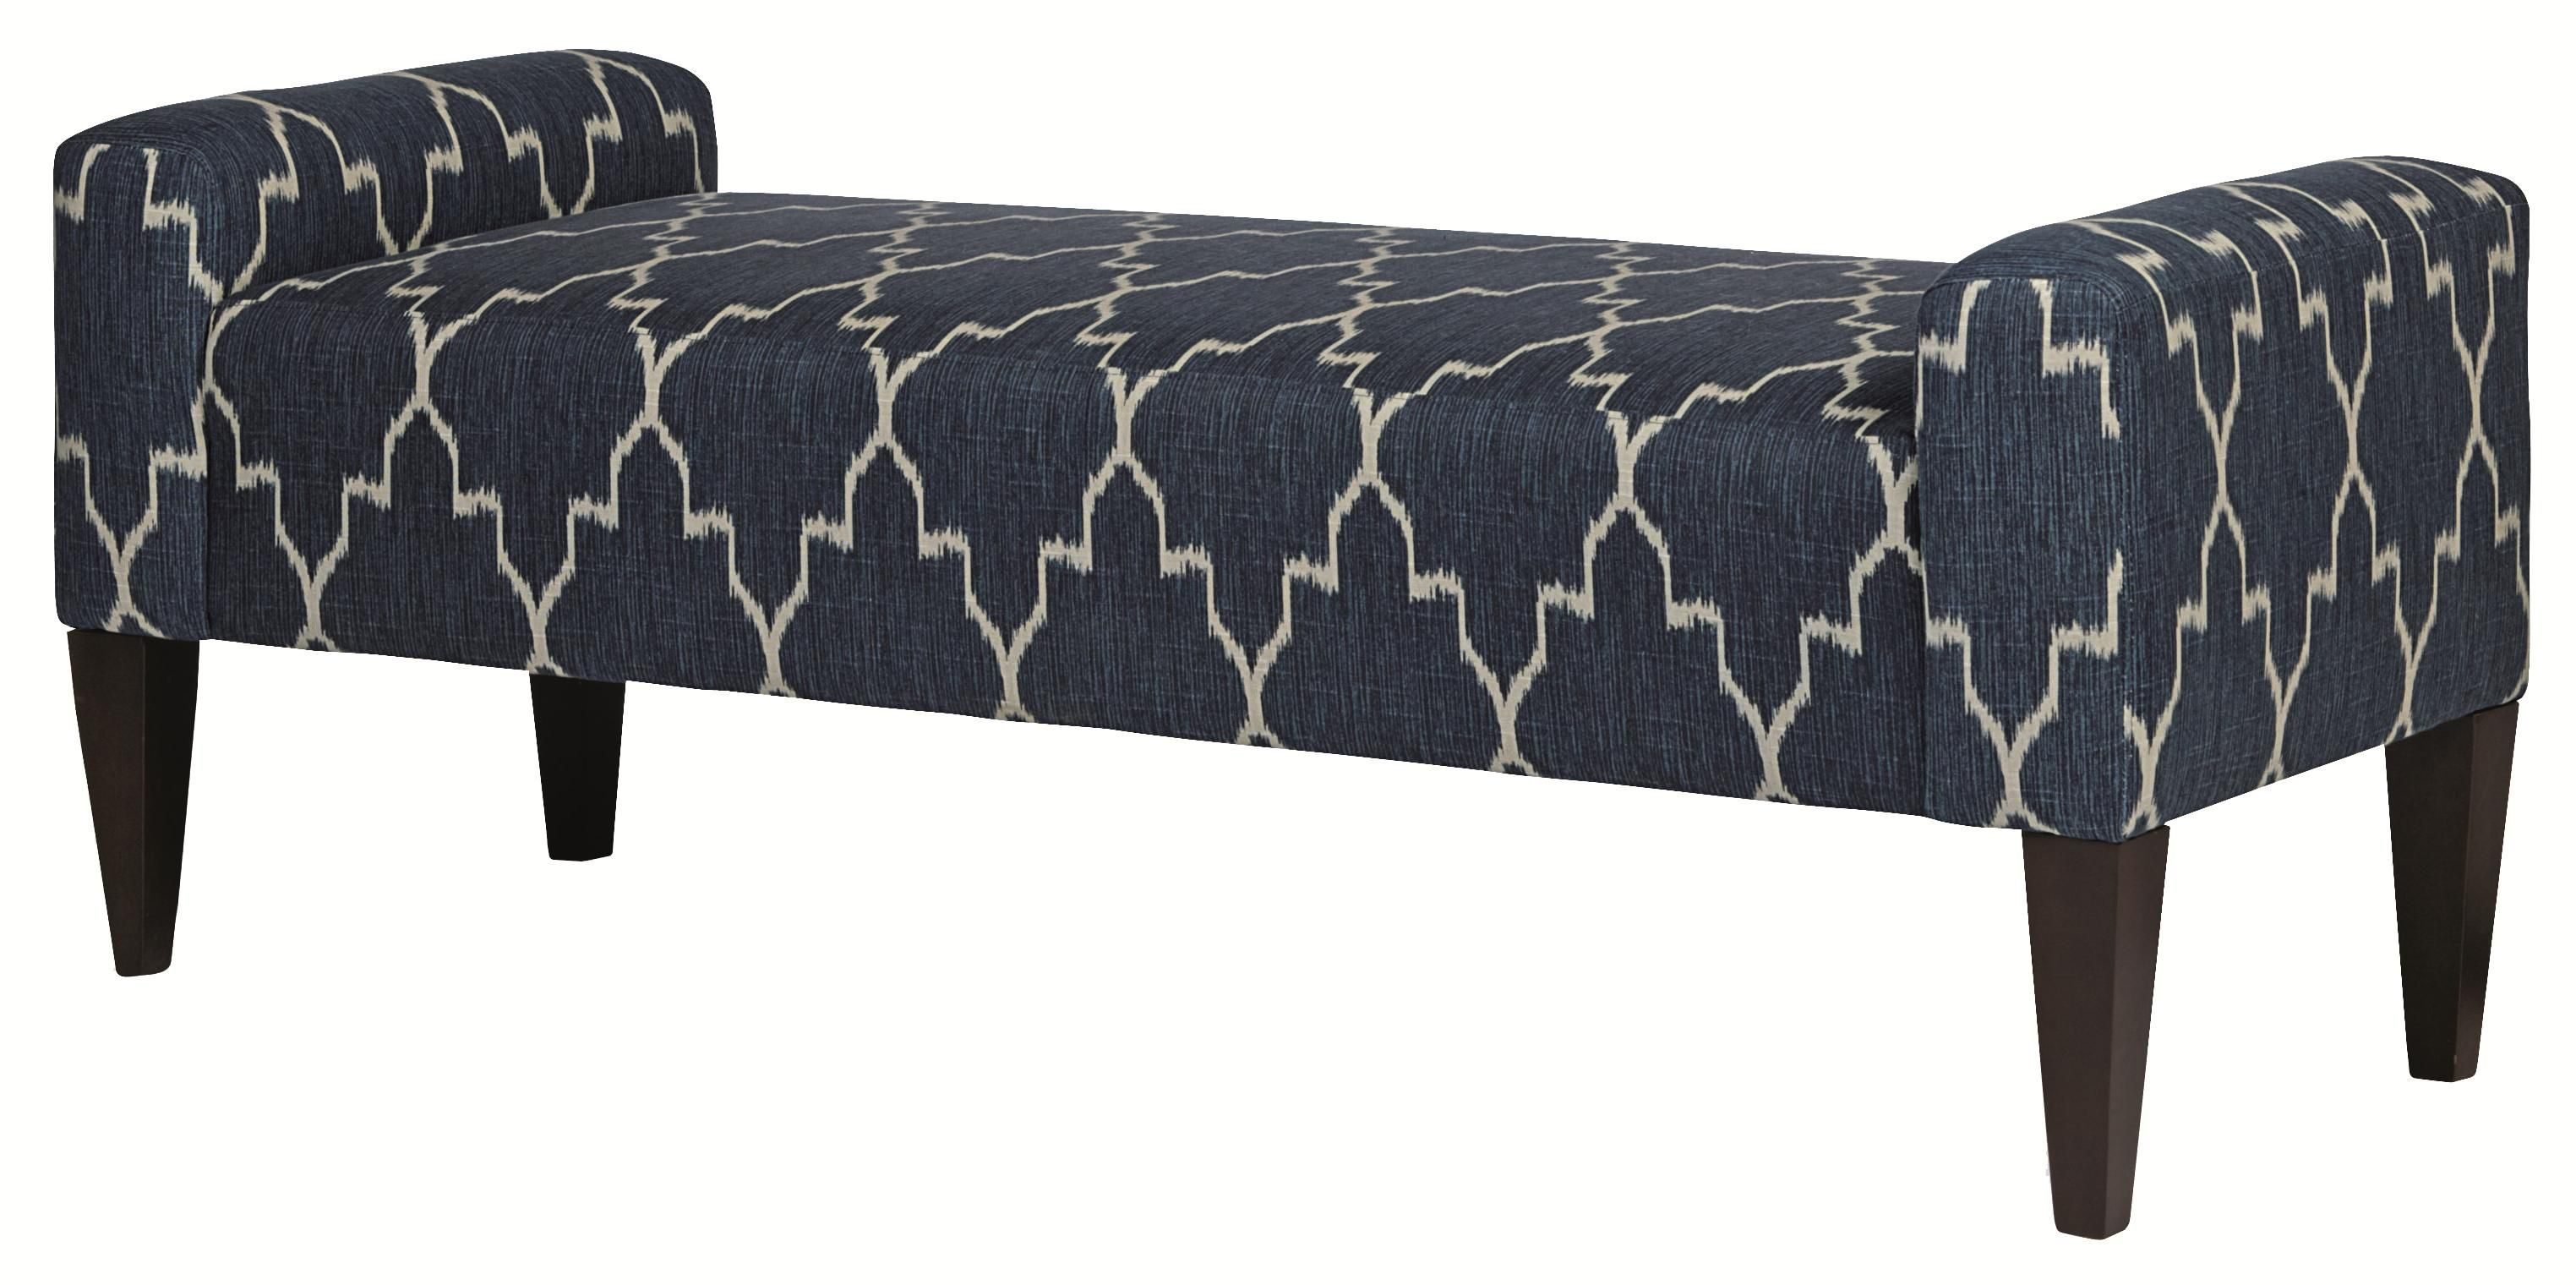 Upholstered Accents Sudbury Bench By Bernhardt